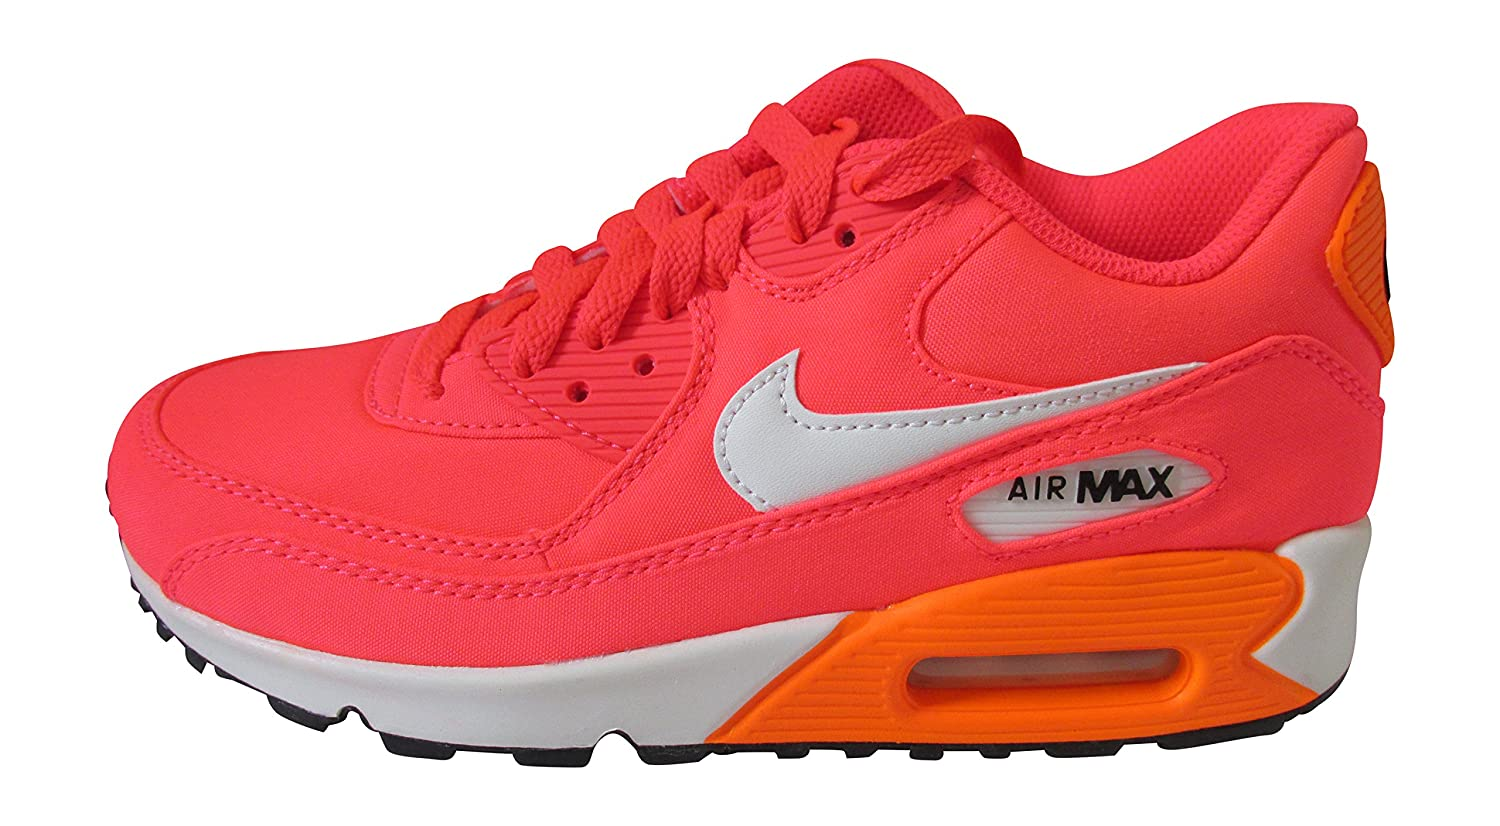 Nike air max 90 Premium QS GS Trainers 693628 Sneakers Shoes